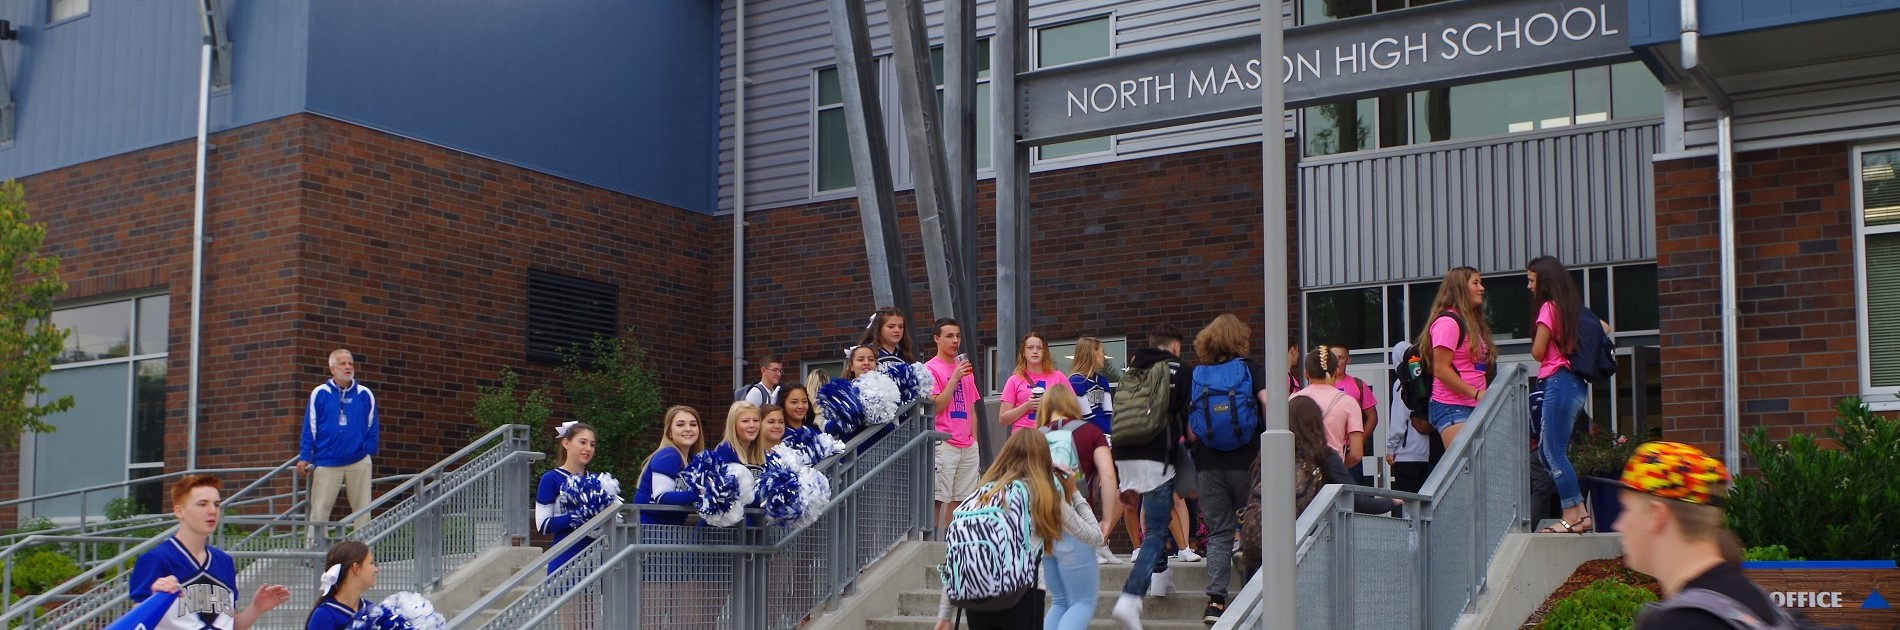 NMHS welcomes back students and staff as they enter the front of the school.